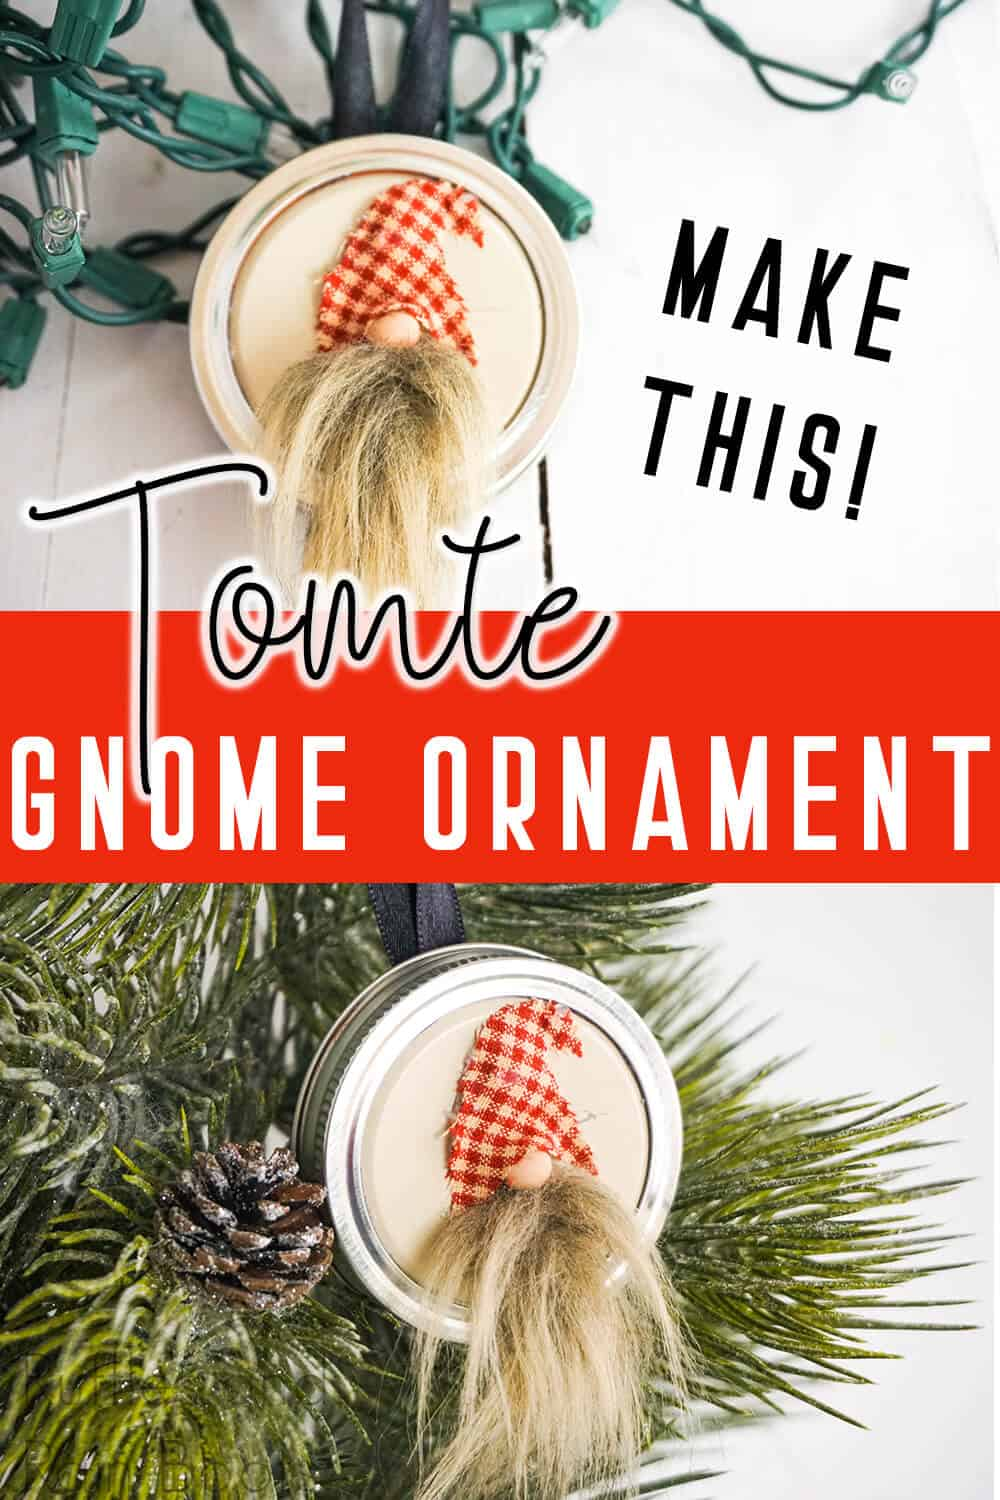 photo collage of christmas ornament gnome with text which reads make this tomte gnome ornament